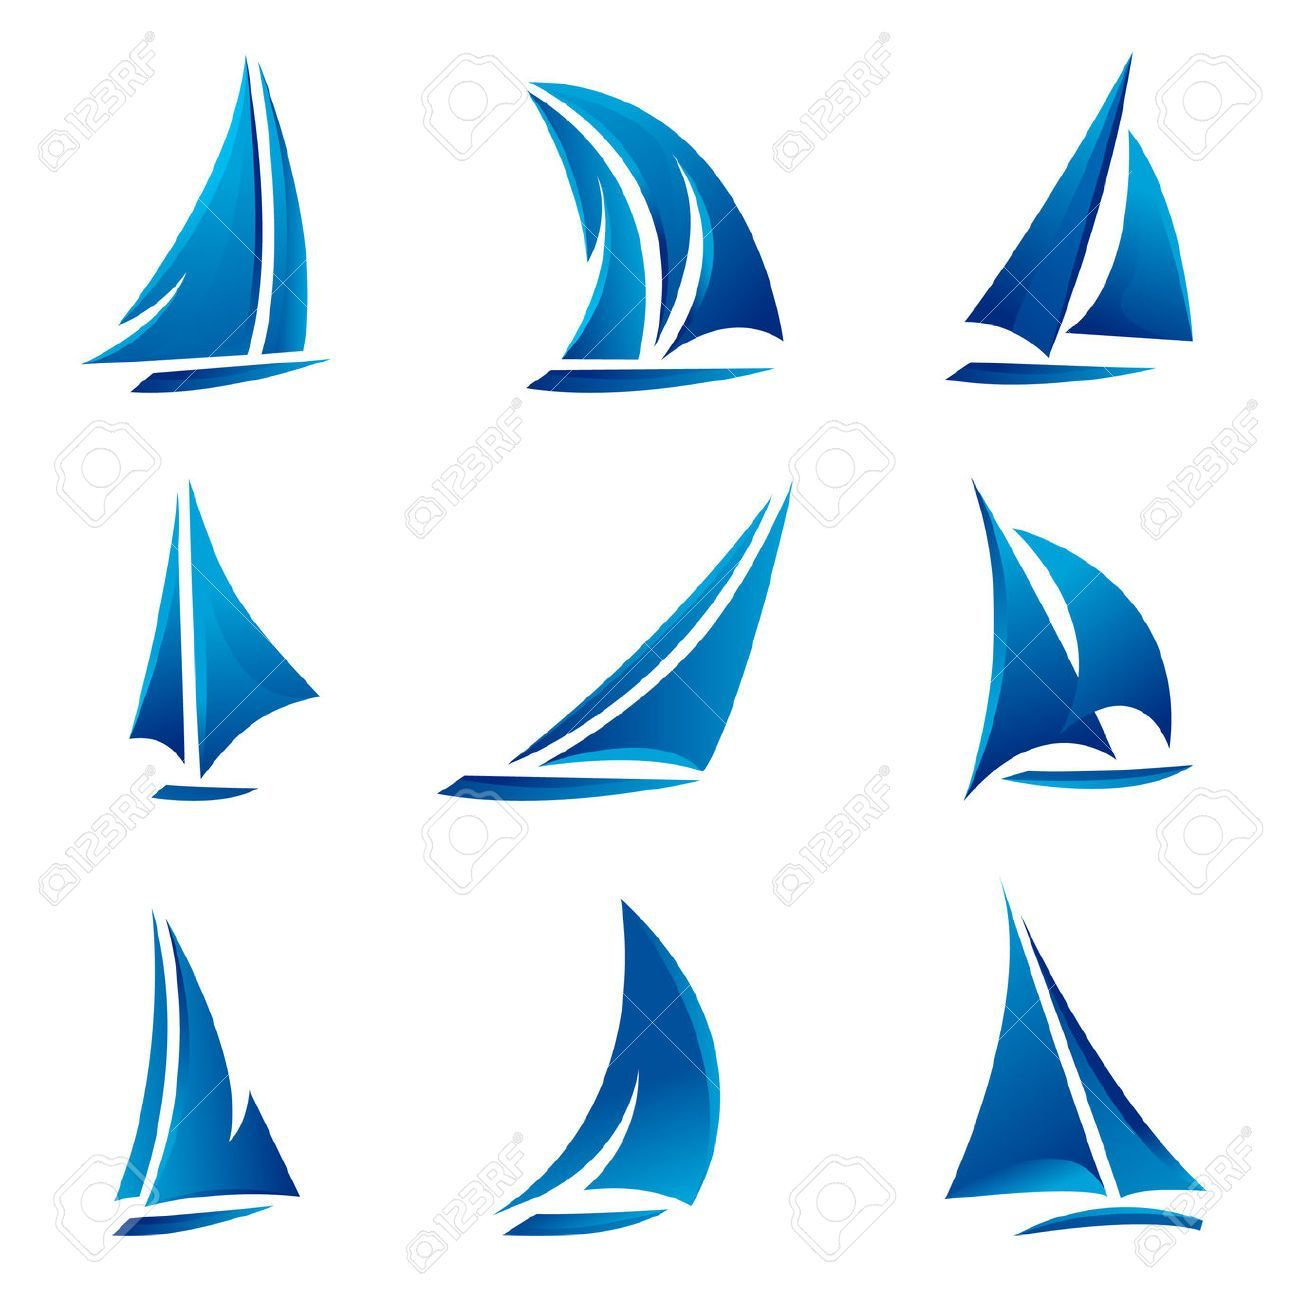 medium resolution of sailboat stock vector illustration and royalty free sailboat clipart yachttattoo